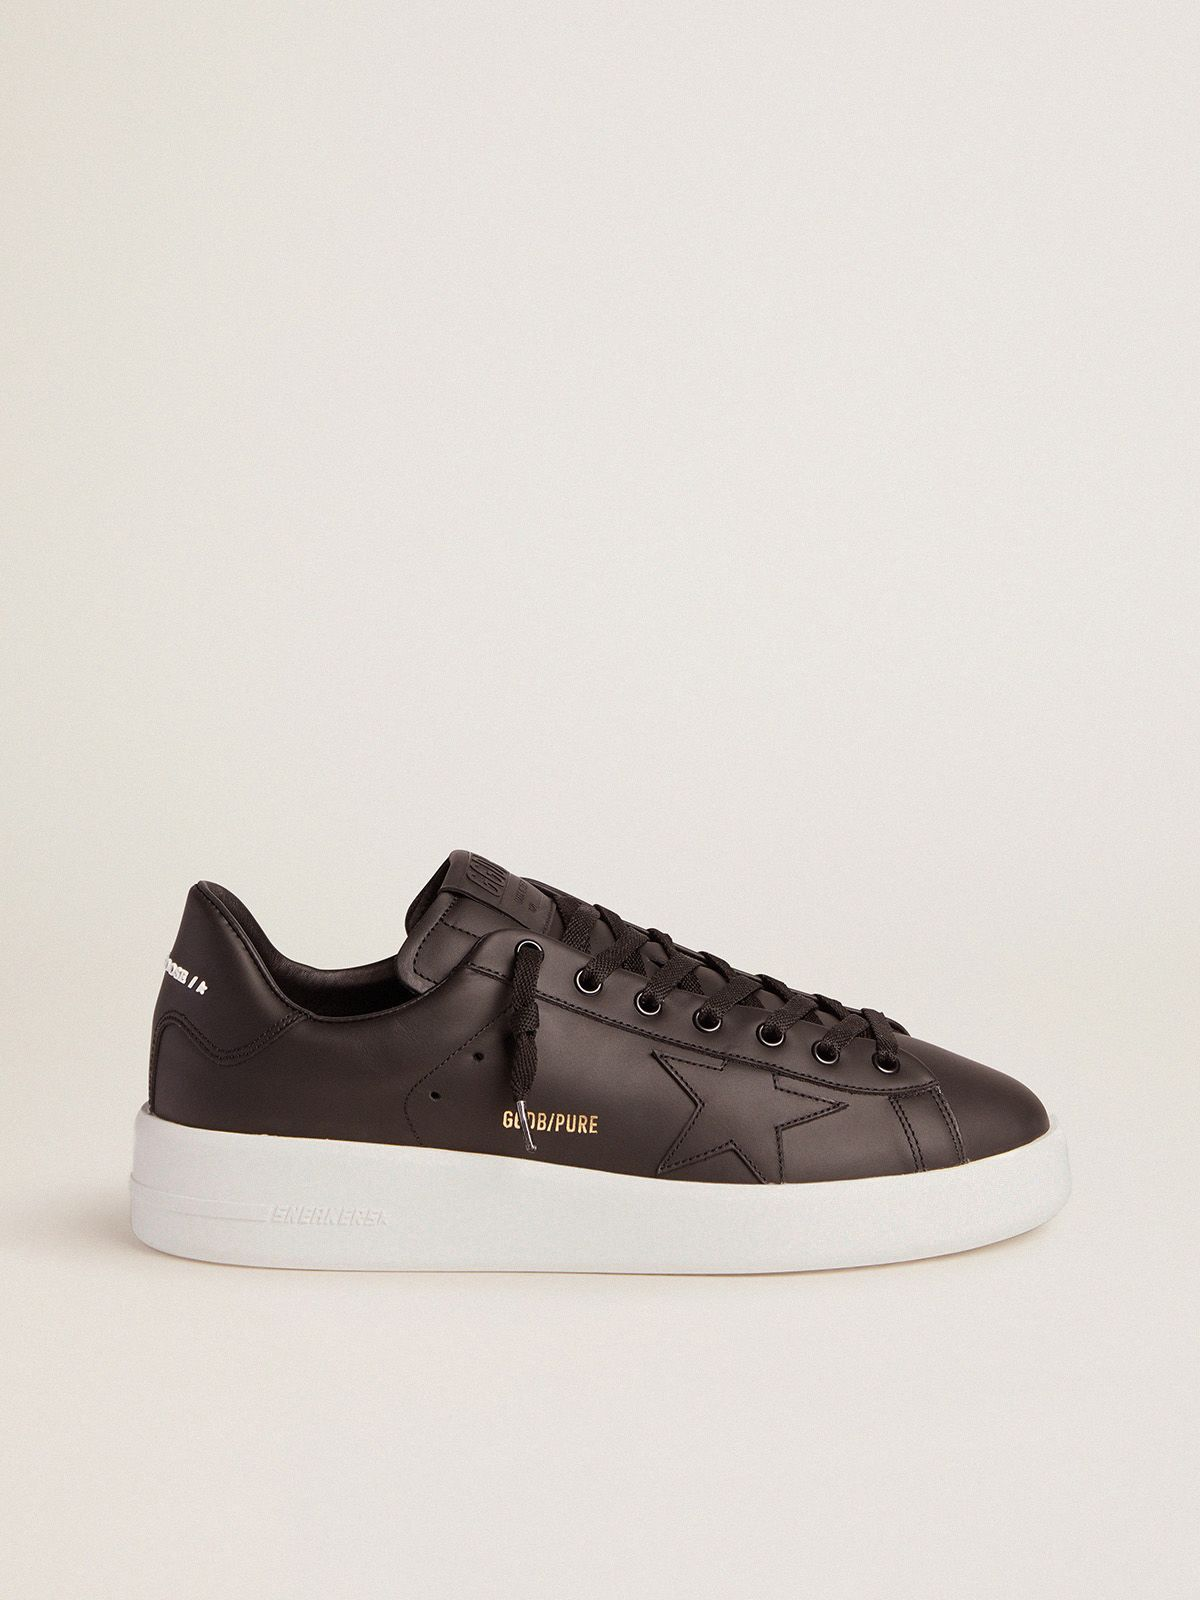 Black leather PURESTAR sneakers